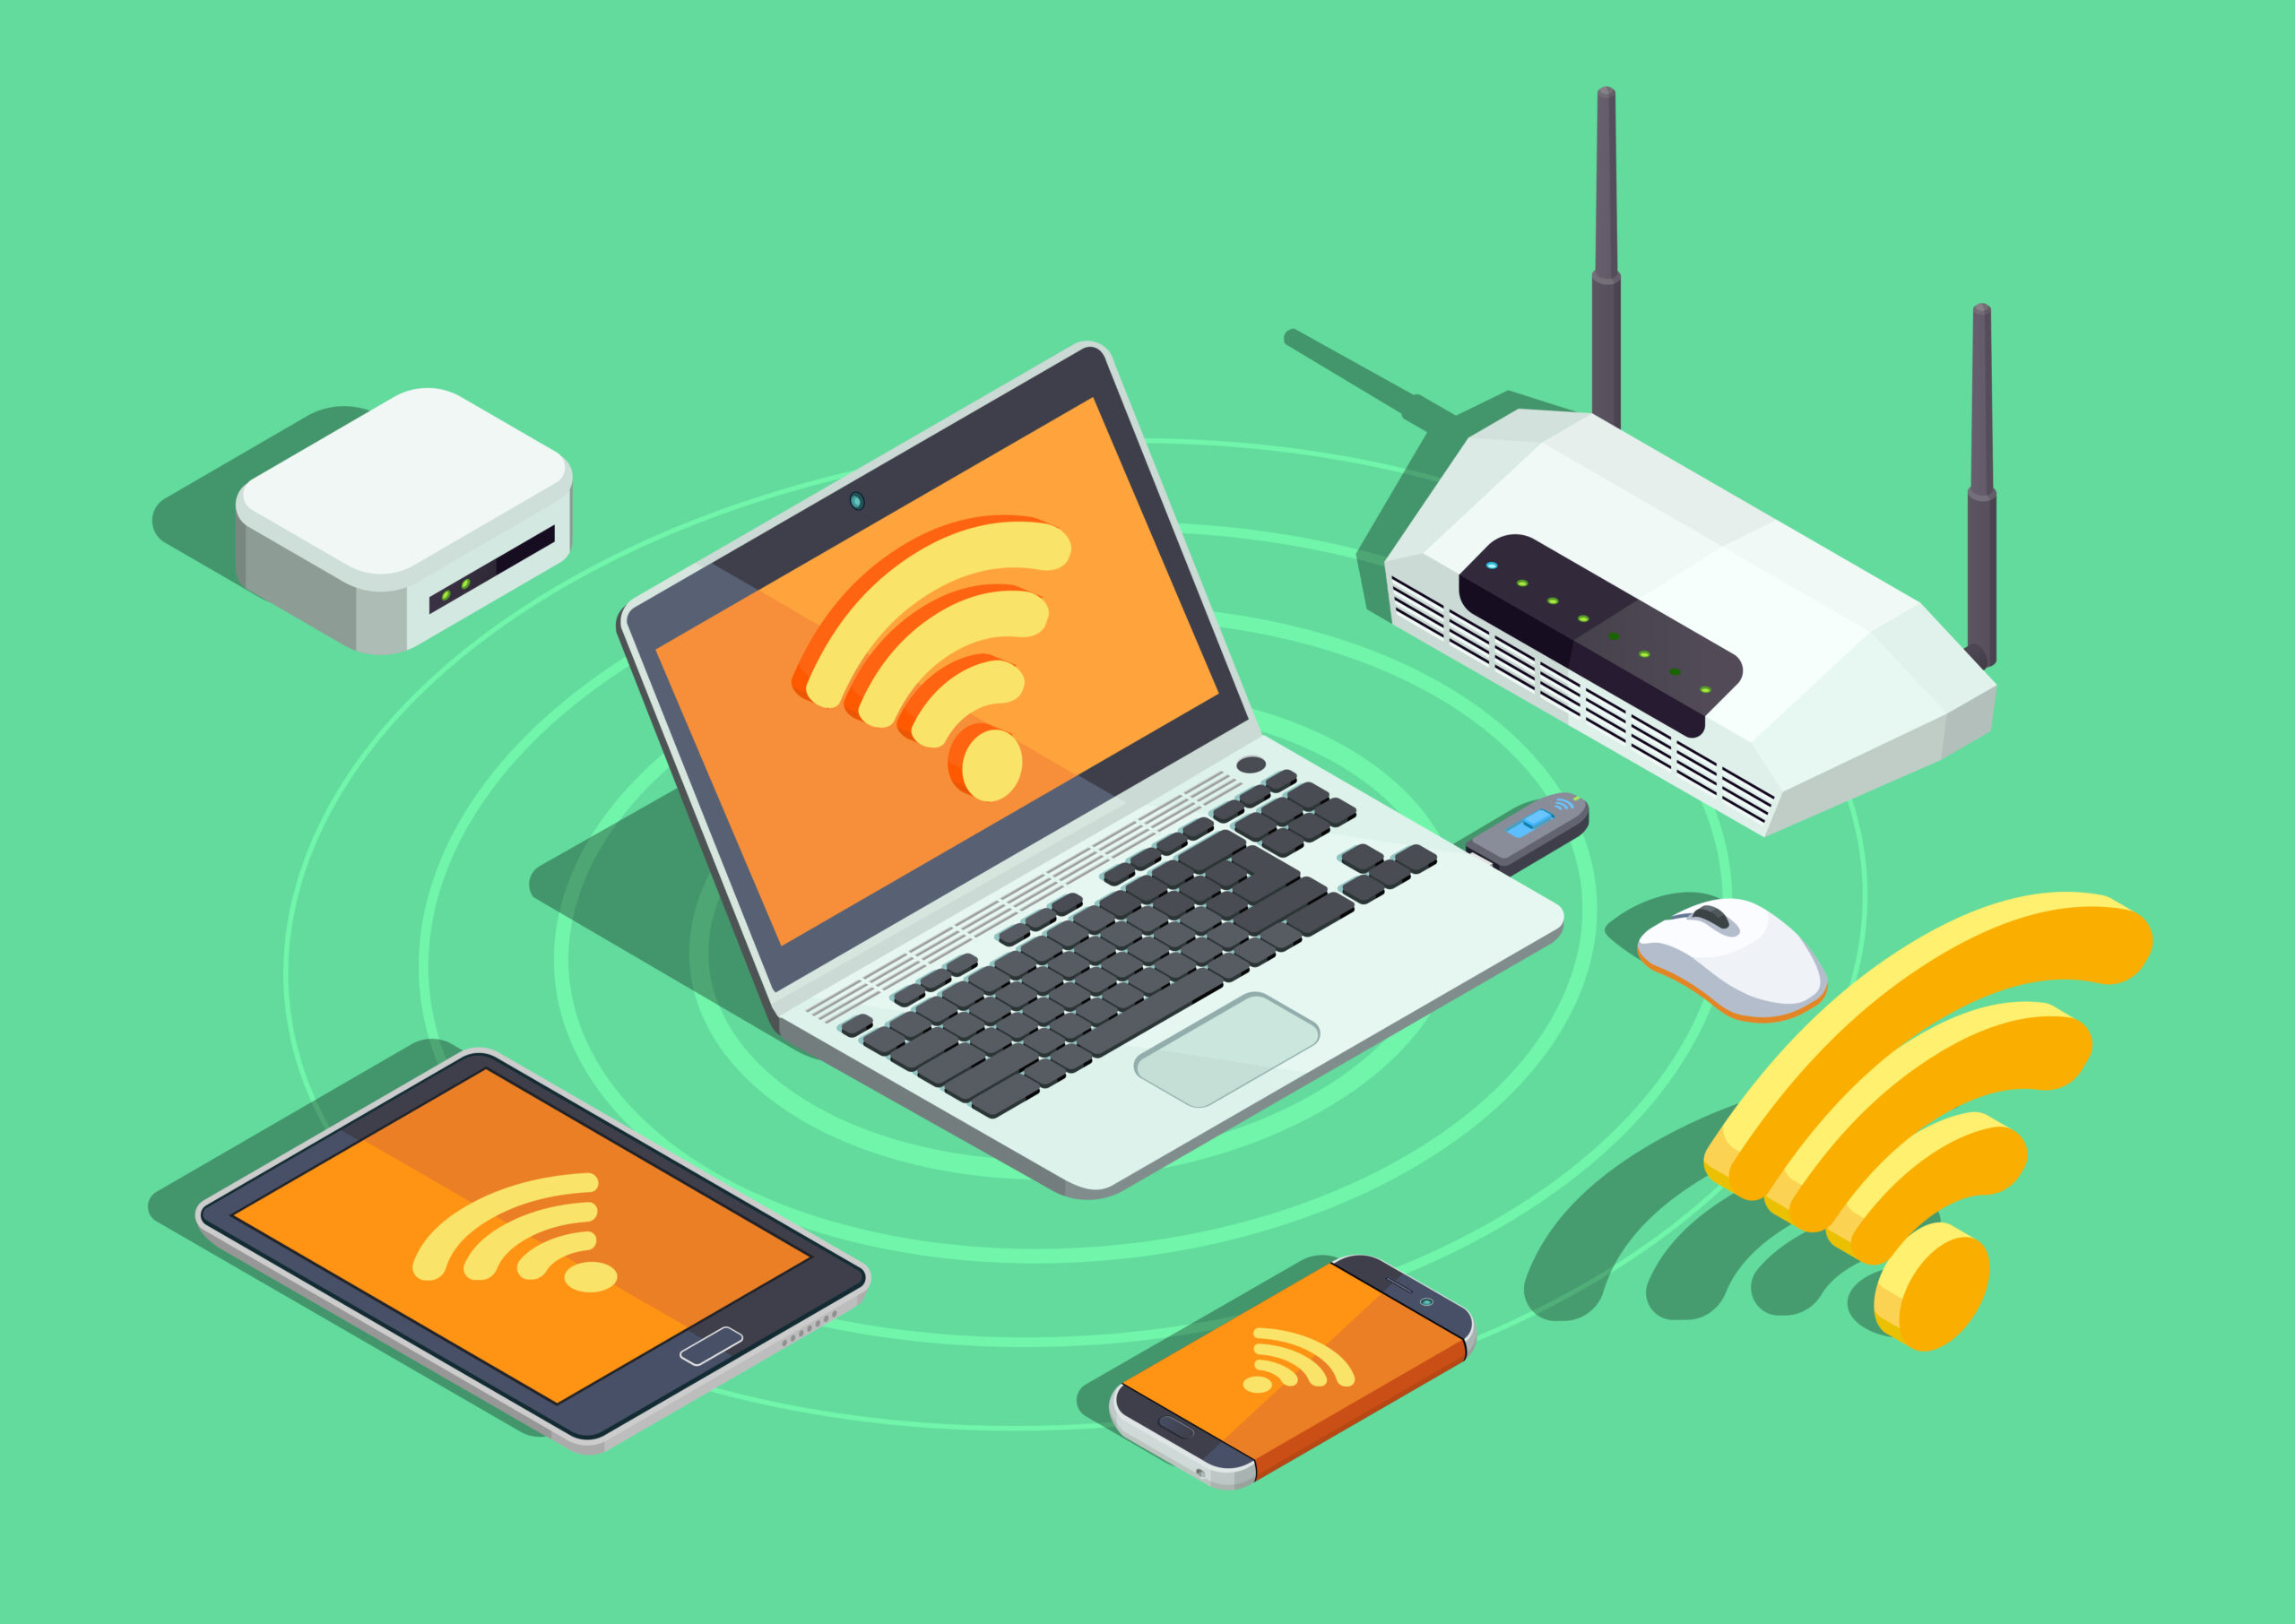 Enjoy High Speed Internet With These Unbeatable Plans!